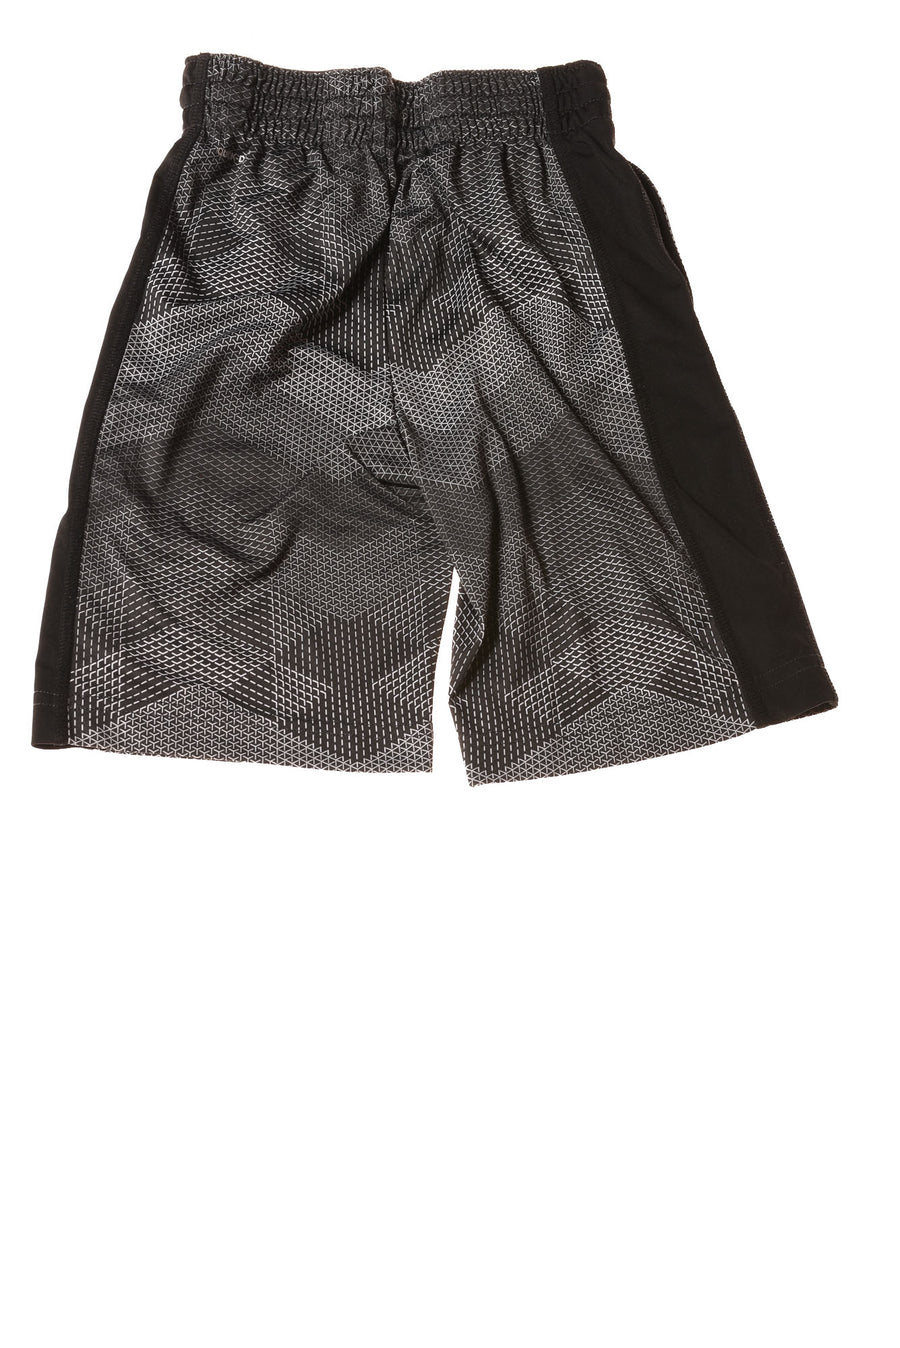 USED Xersion Baby Boy's Shorts 6 Black & Gray